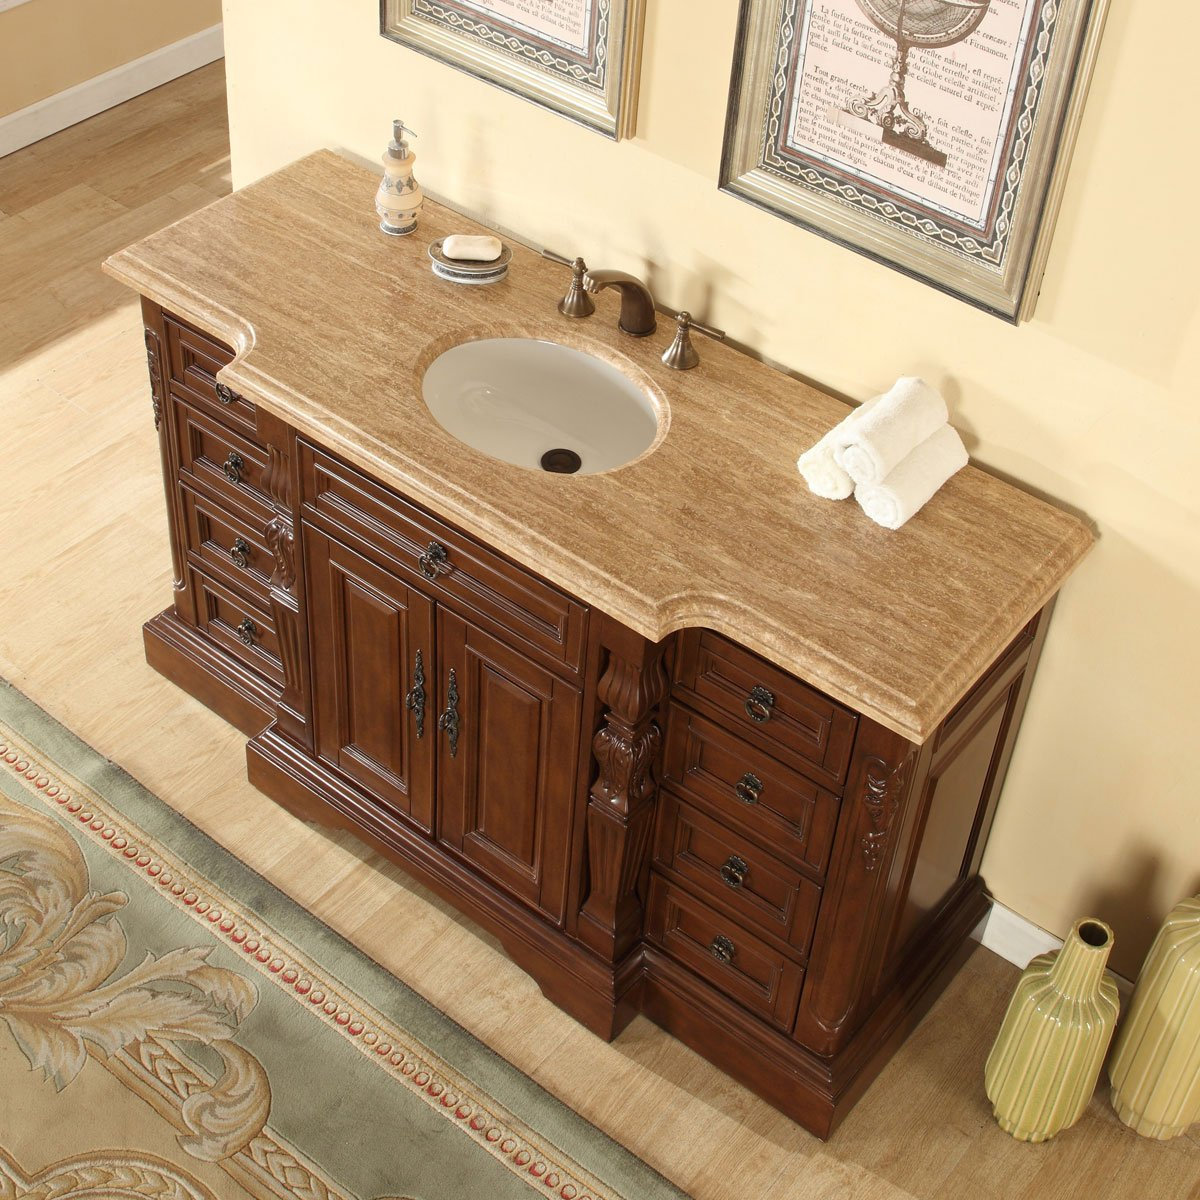 Design Sink Cabinets amazon com silkroad exclusive bathroom vanity travertine top single sink cabinet 60 home kitchen